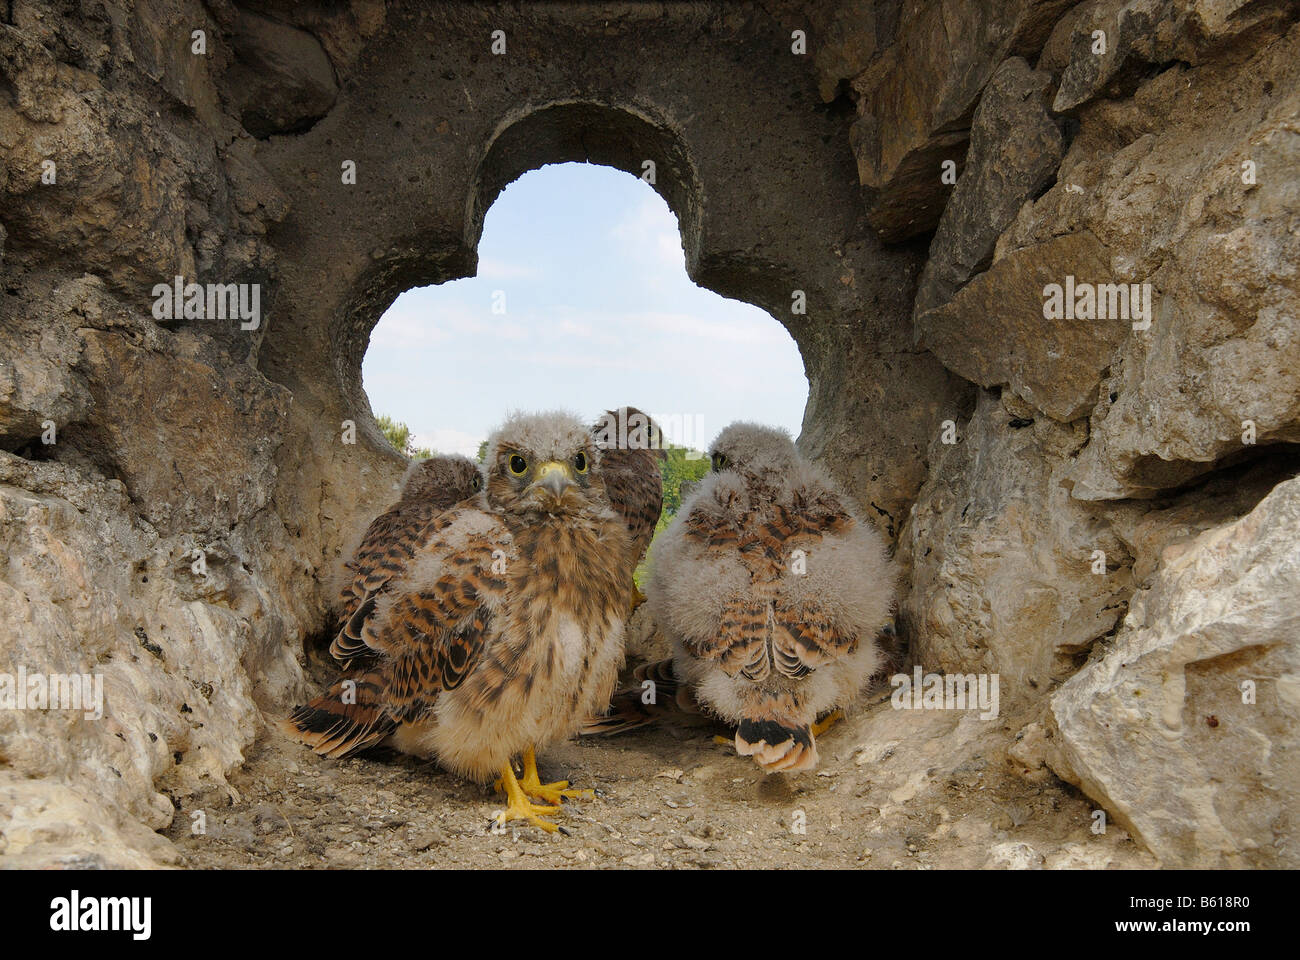 Hatchlings of the European Kestrel (Falco tinnunculus), partially covered in downy feathers, sitting in front of - Stock Image